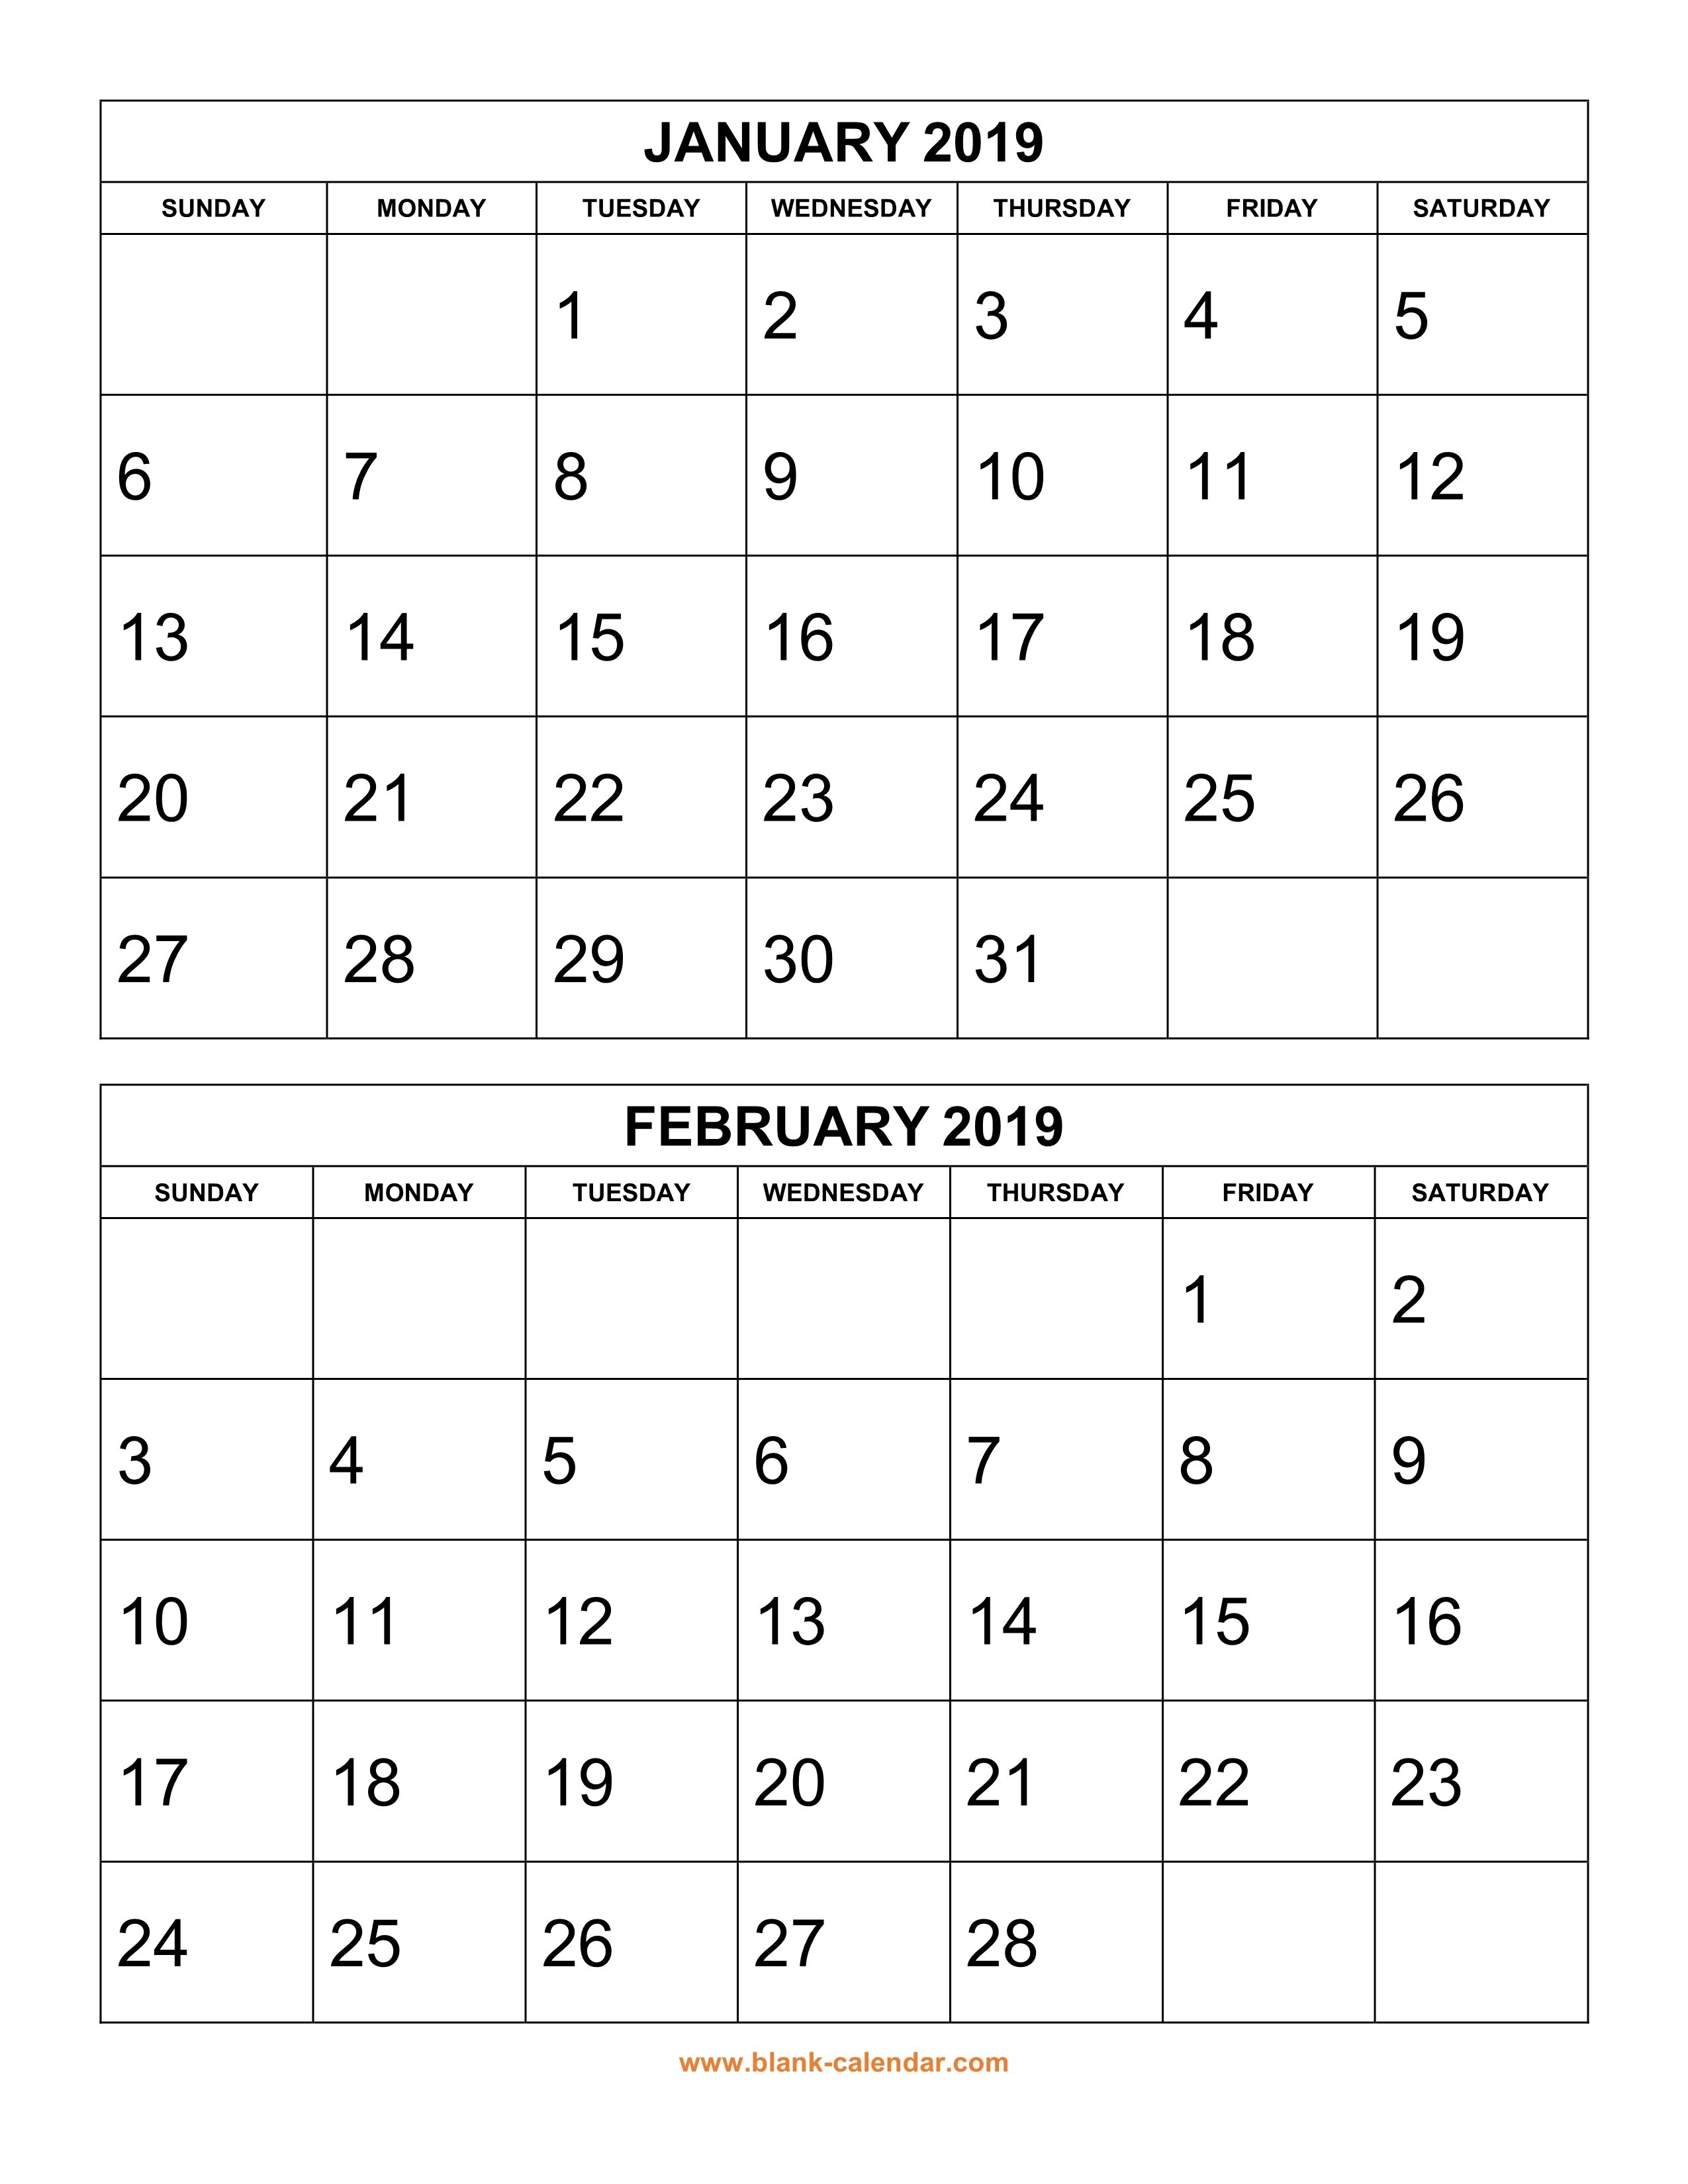 Free Download Printable Calendar 2019, 2 Months Per Page, 6 Pages Calendar 2019 By Month